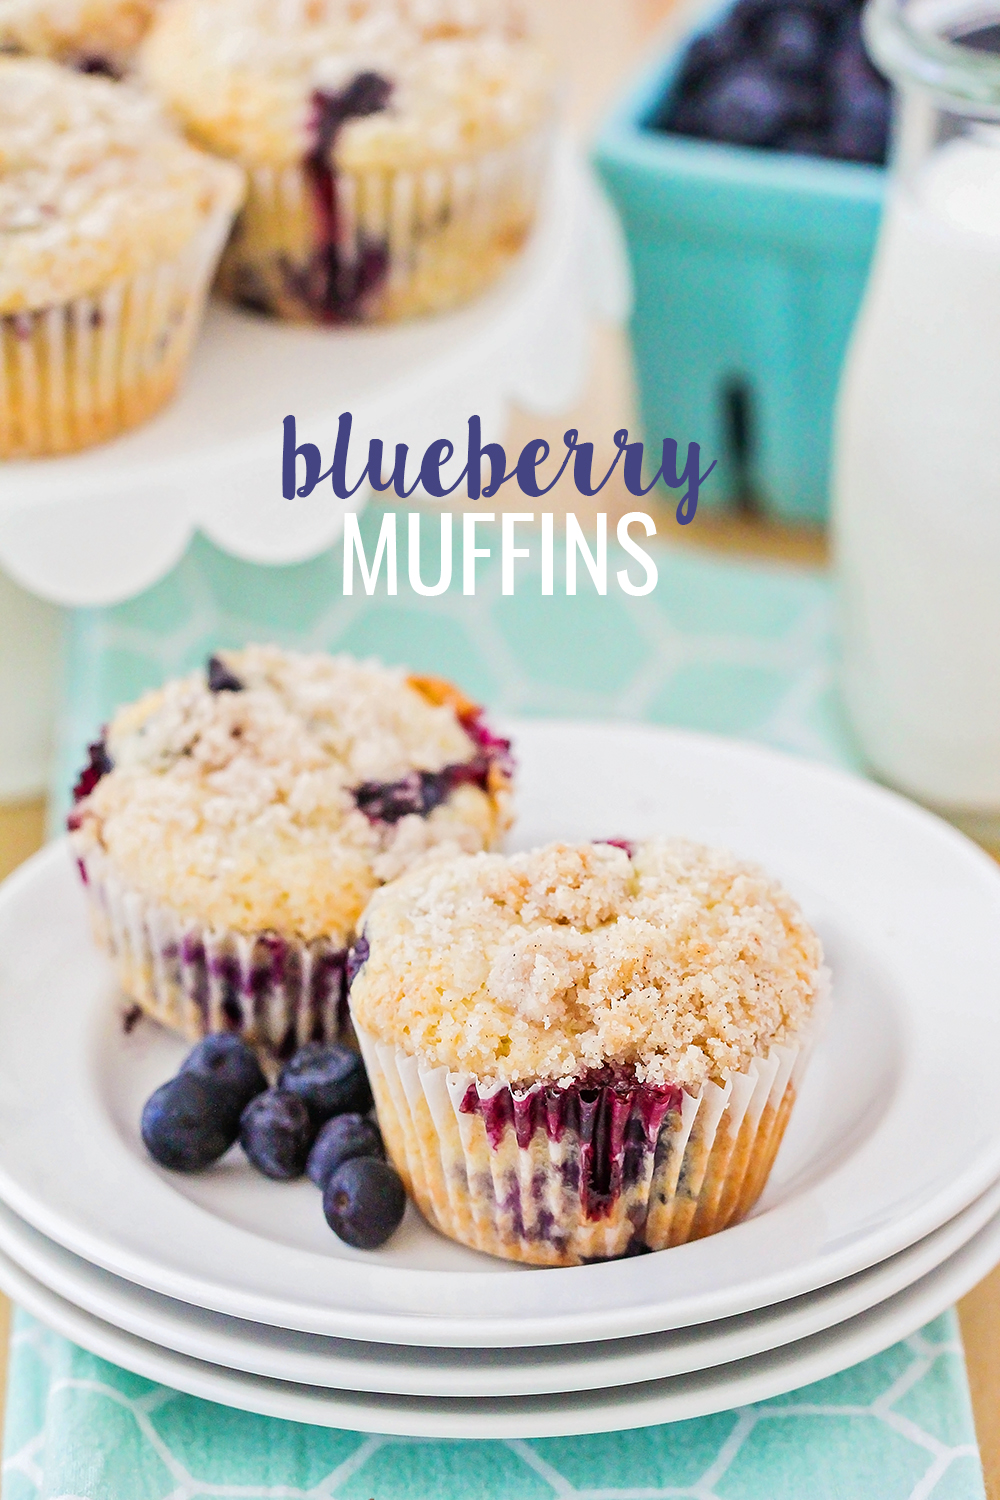 These streusel-topped blueberry muffins are made with fresh berries and have the perfect tender crumb!